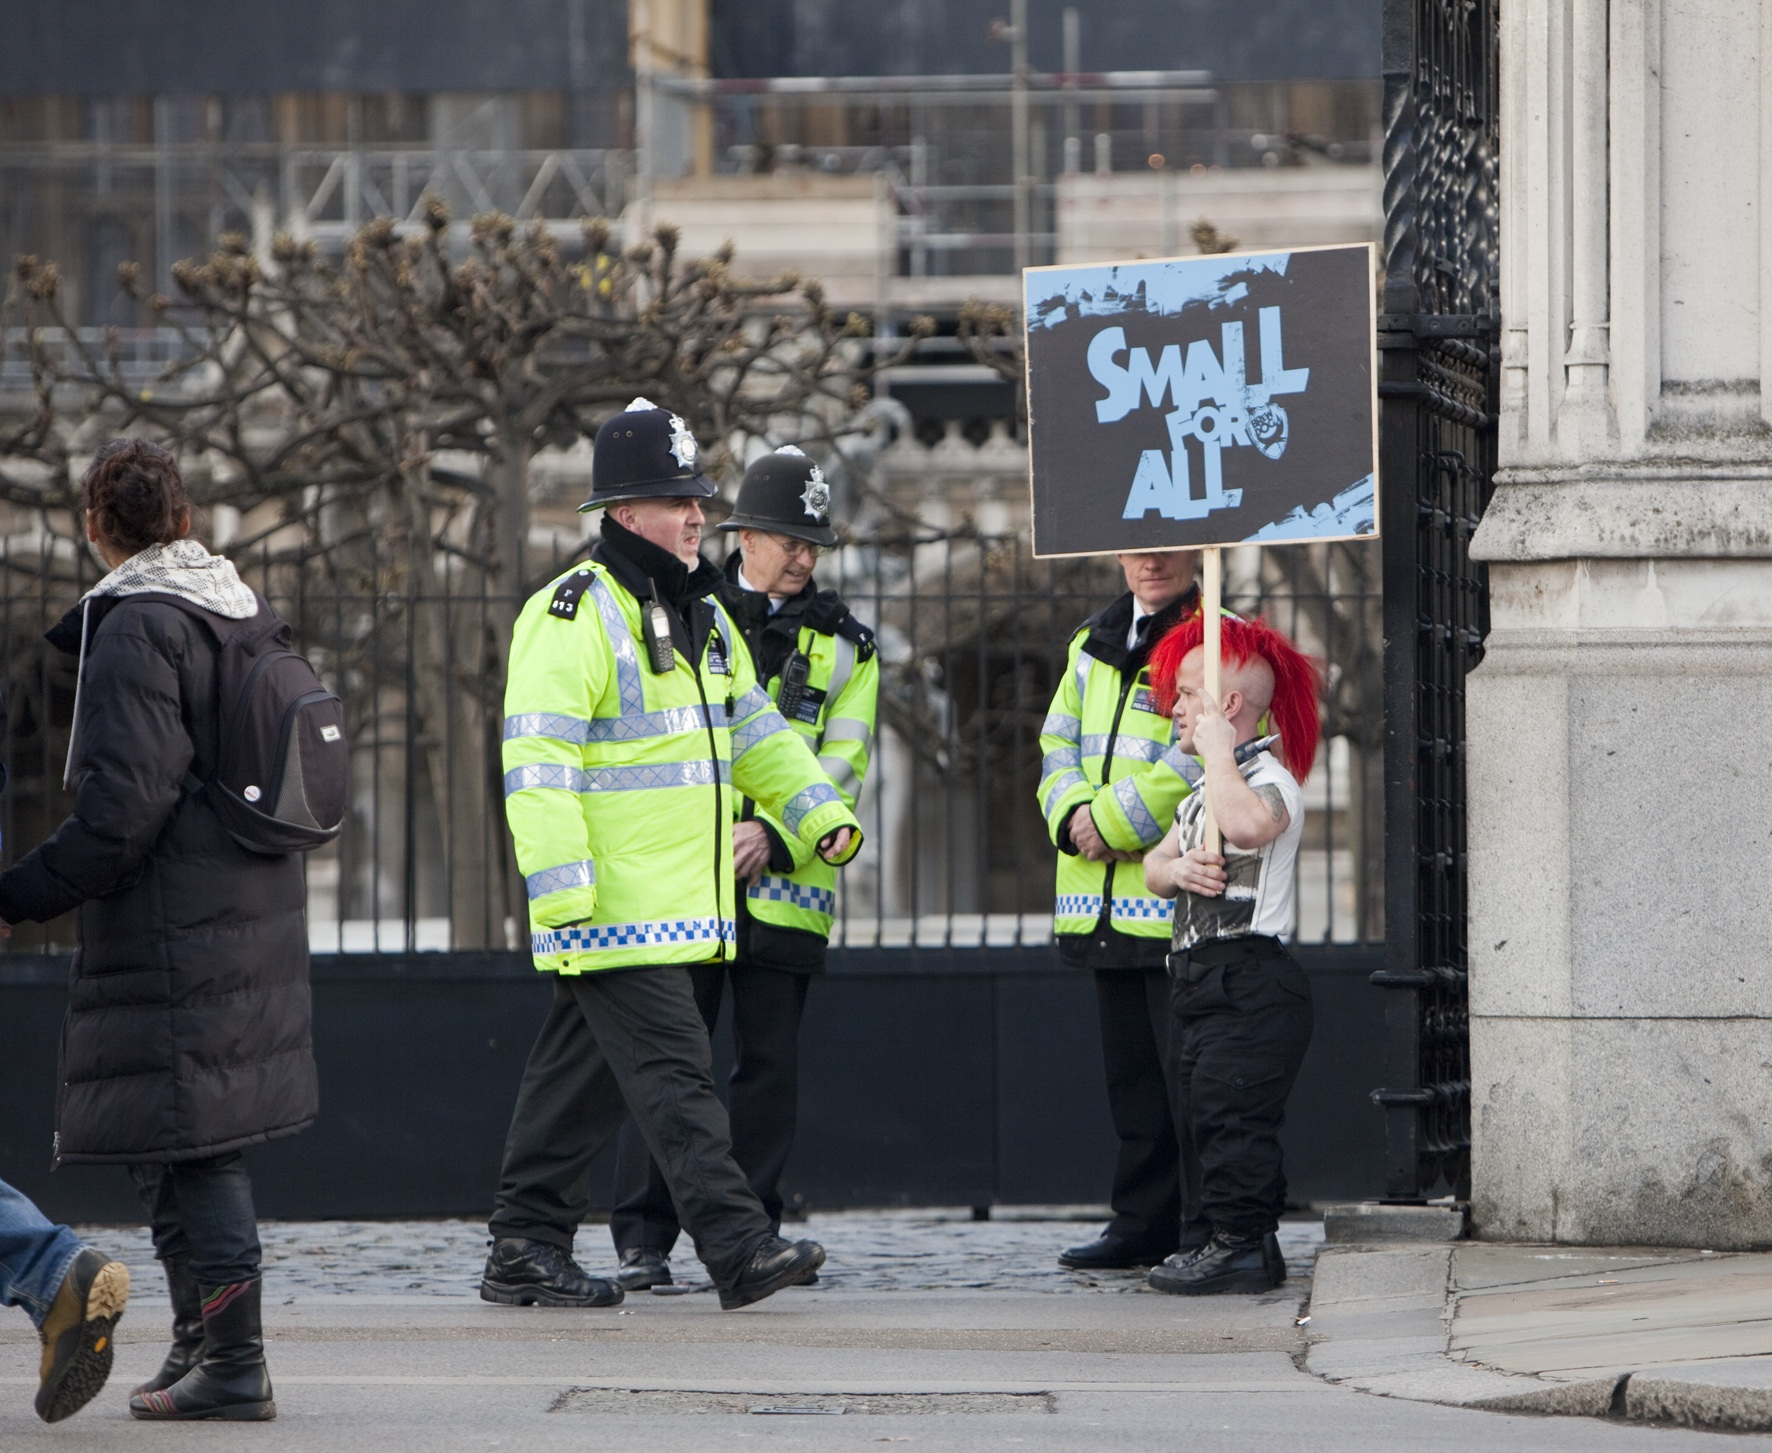 BrewDog's dwarf protest caused a scene at Westminster